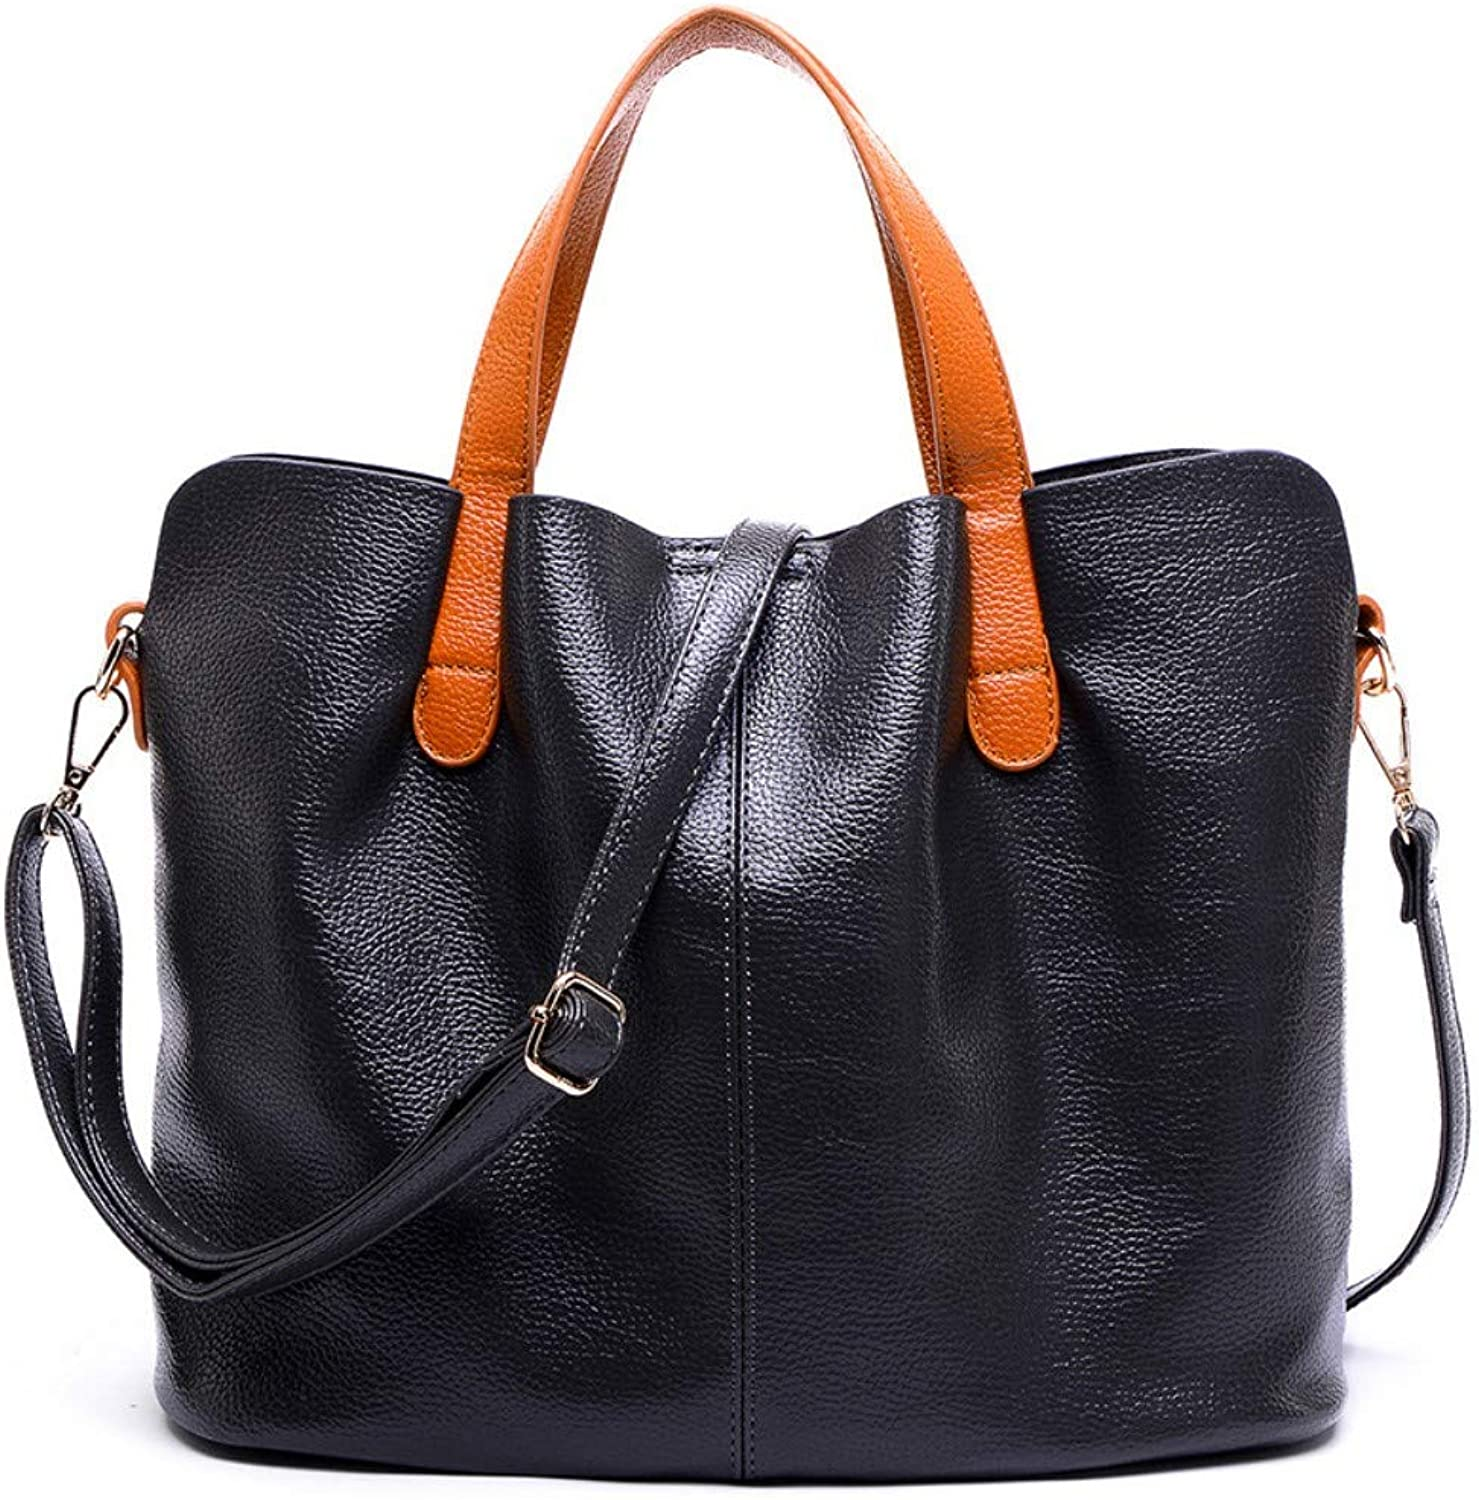 NZZNB Fashion Women's Bag Lightweight Soft Leather Large-Capacity Handbag Simple Solid color Retro Shoulder Bag Practical Satchel Tote Purse Top-Handle Handbags